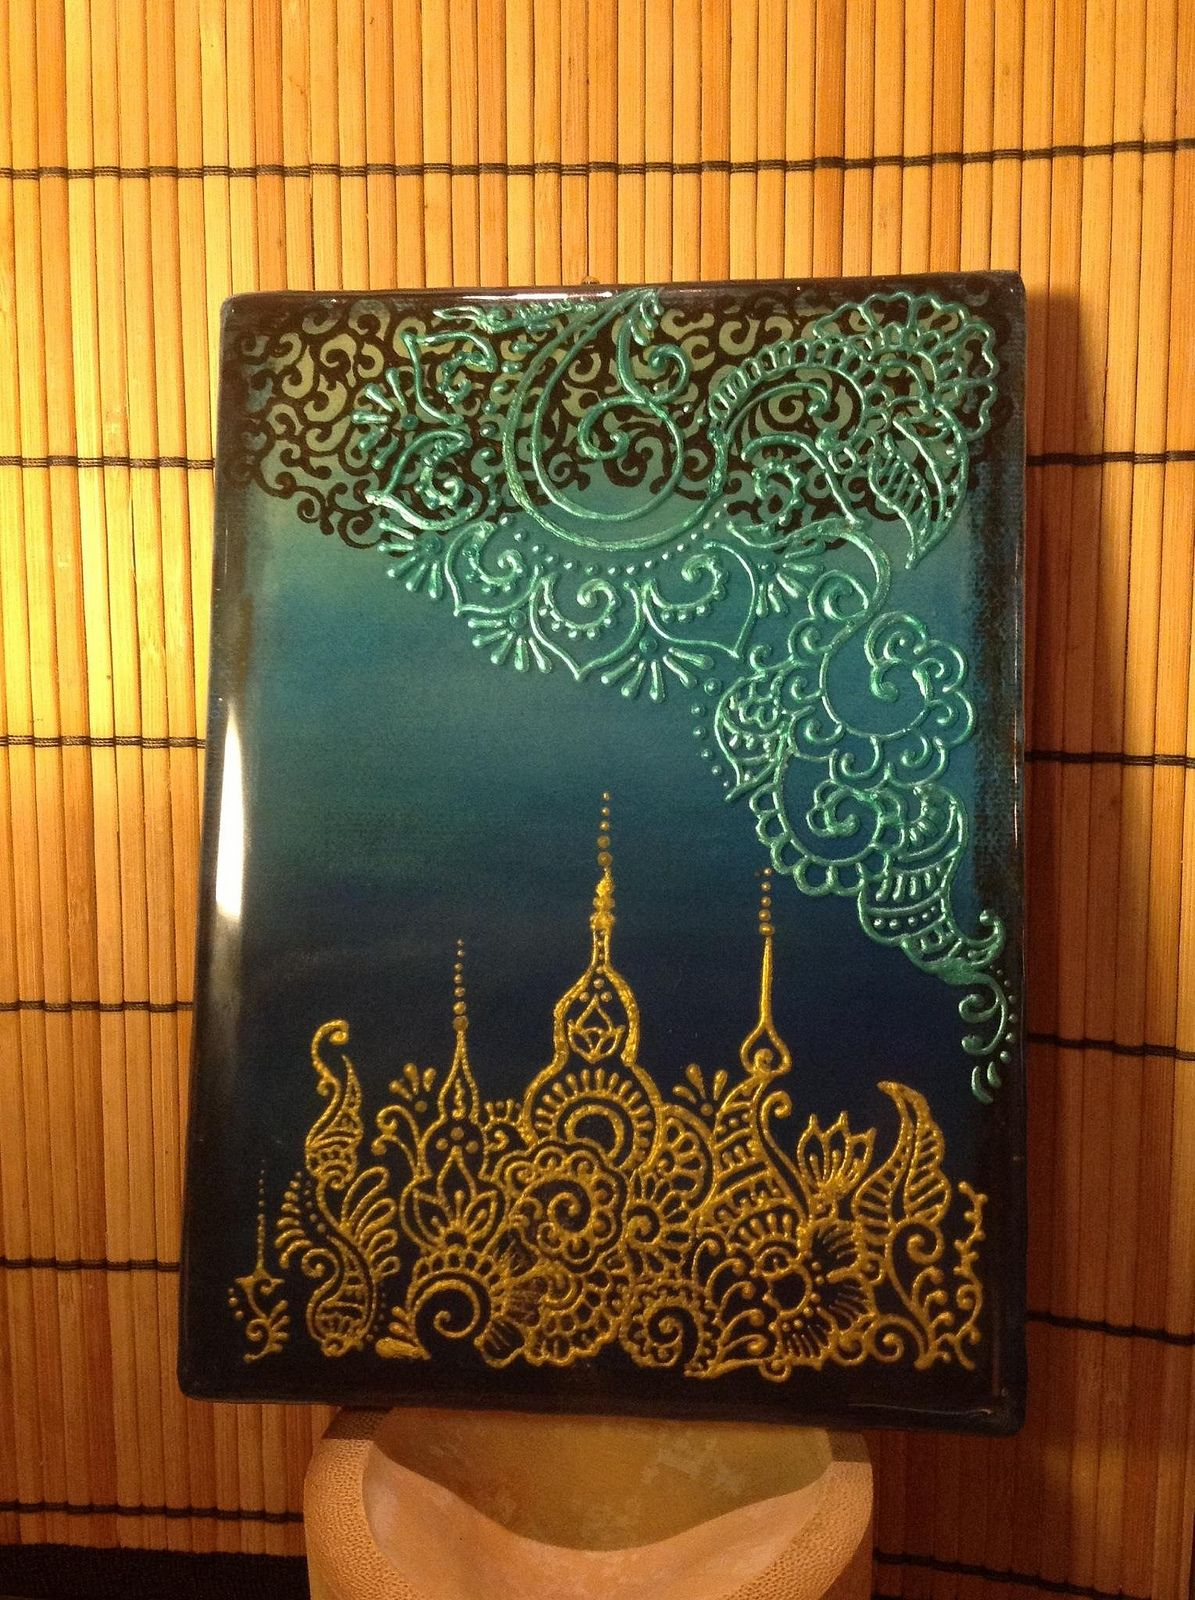 Puffy paint designs - Henna Designs On Canvas Done With Fabric Paint Resin Good Use Of Extra Puffy Paint